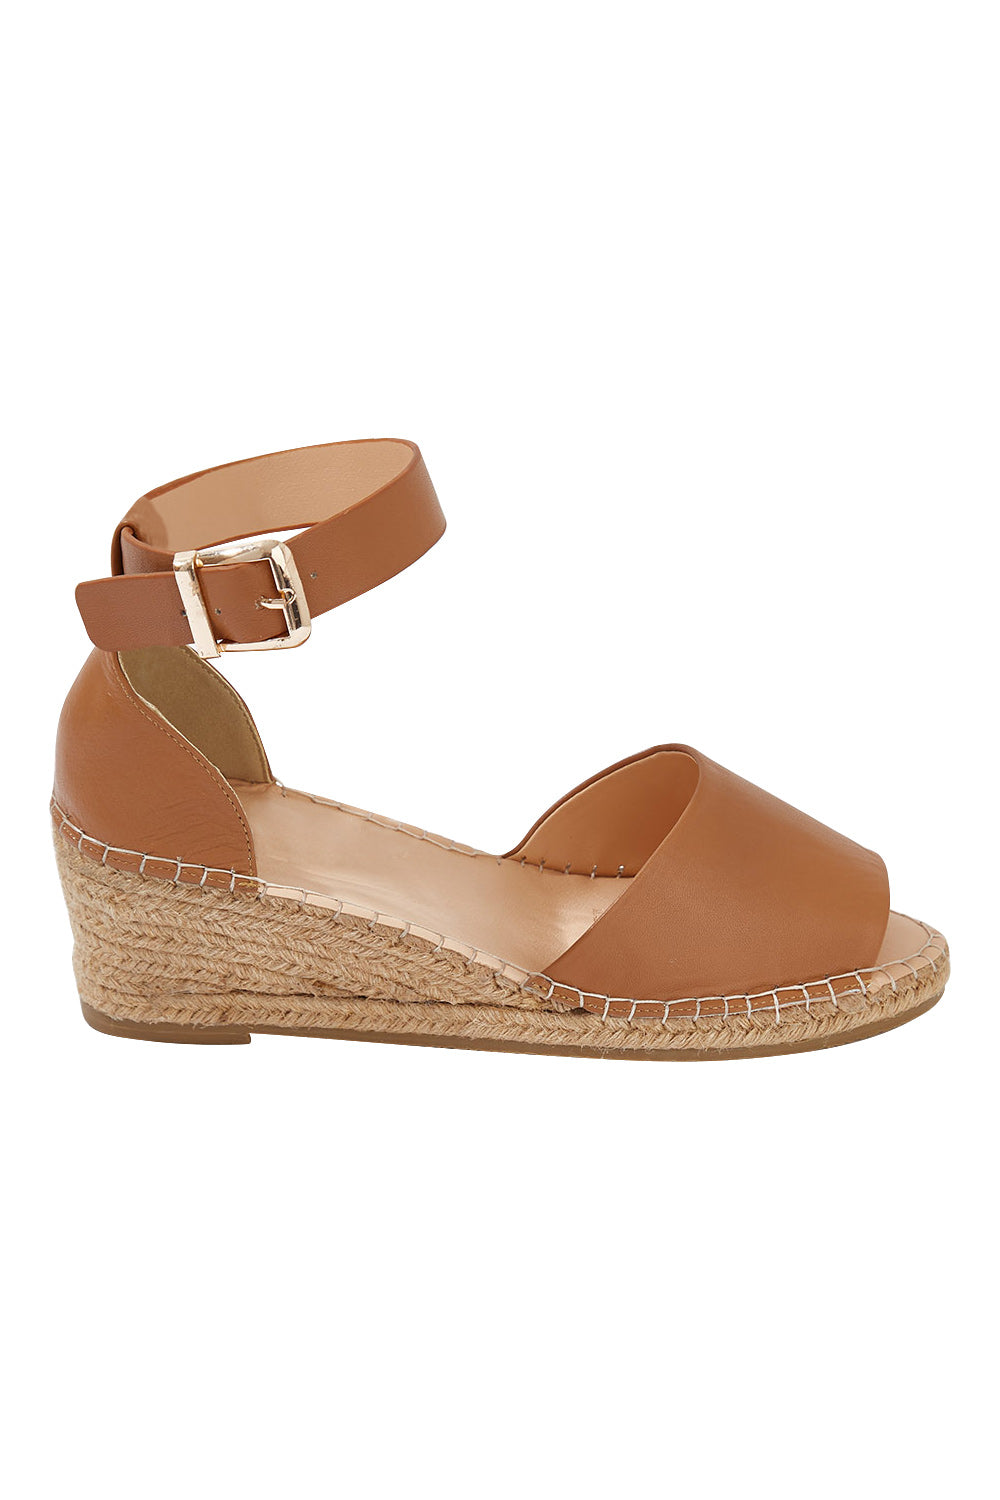 Helene in Tan - Leather Wedge